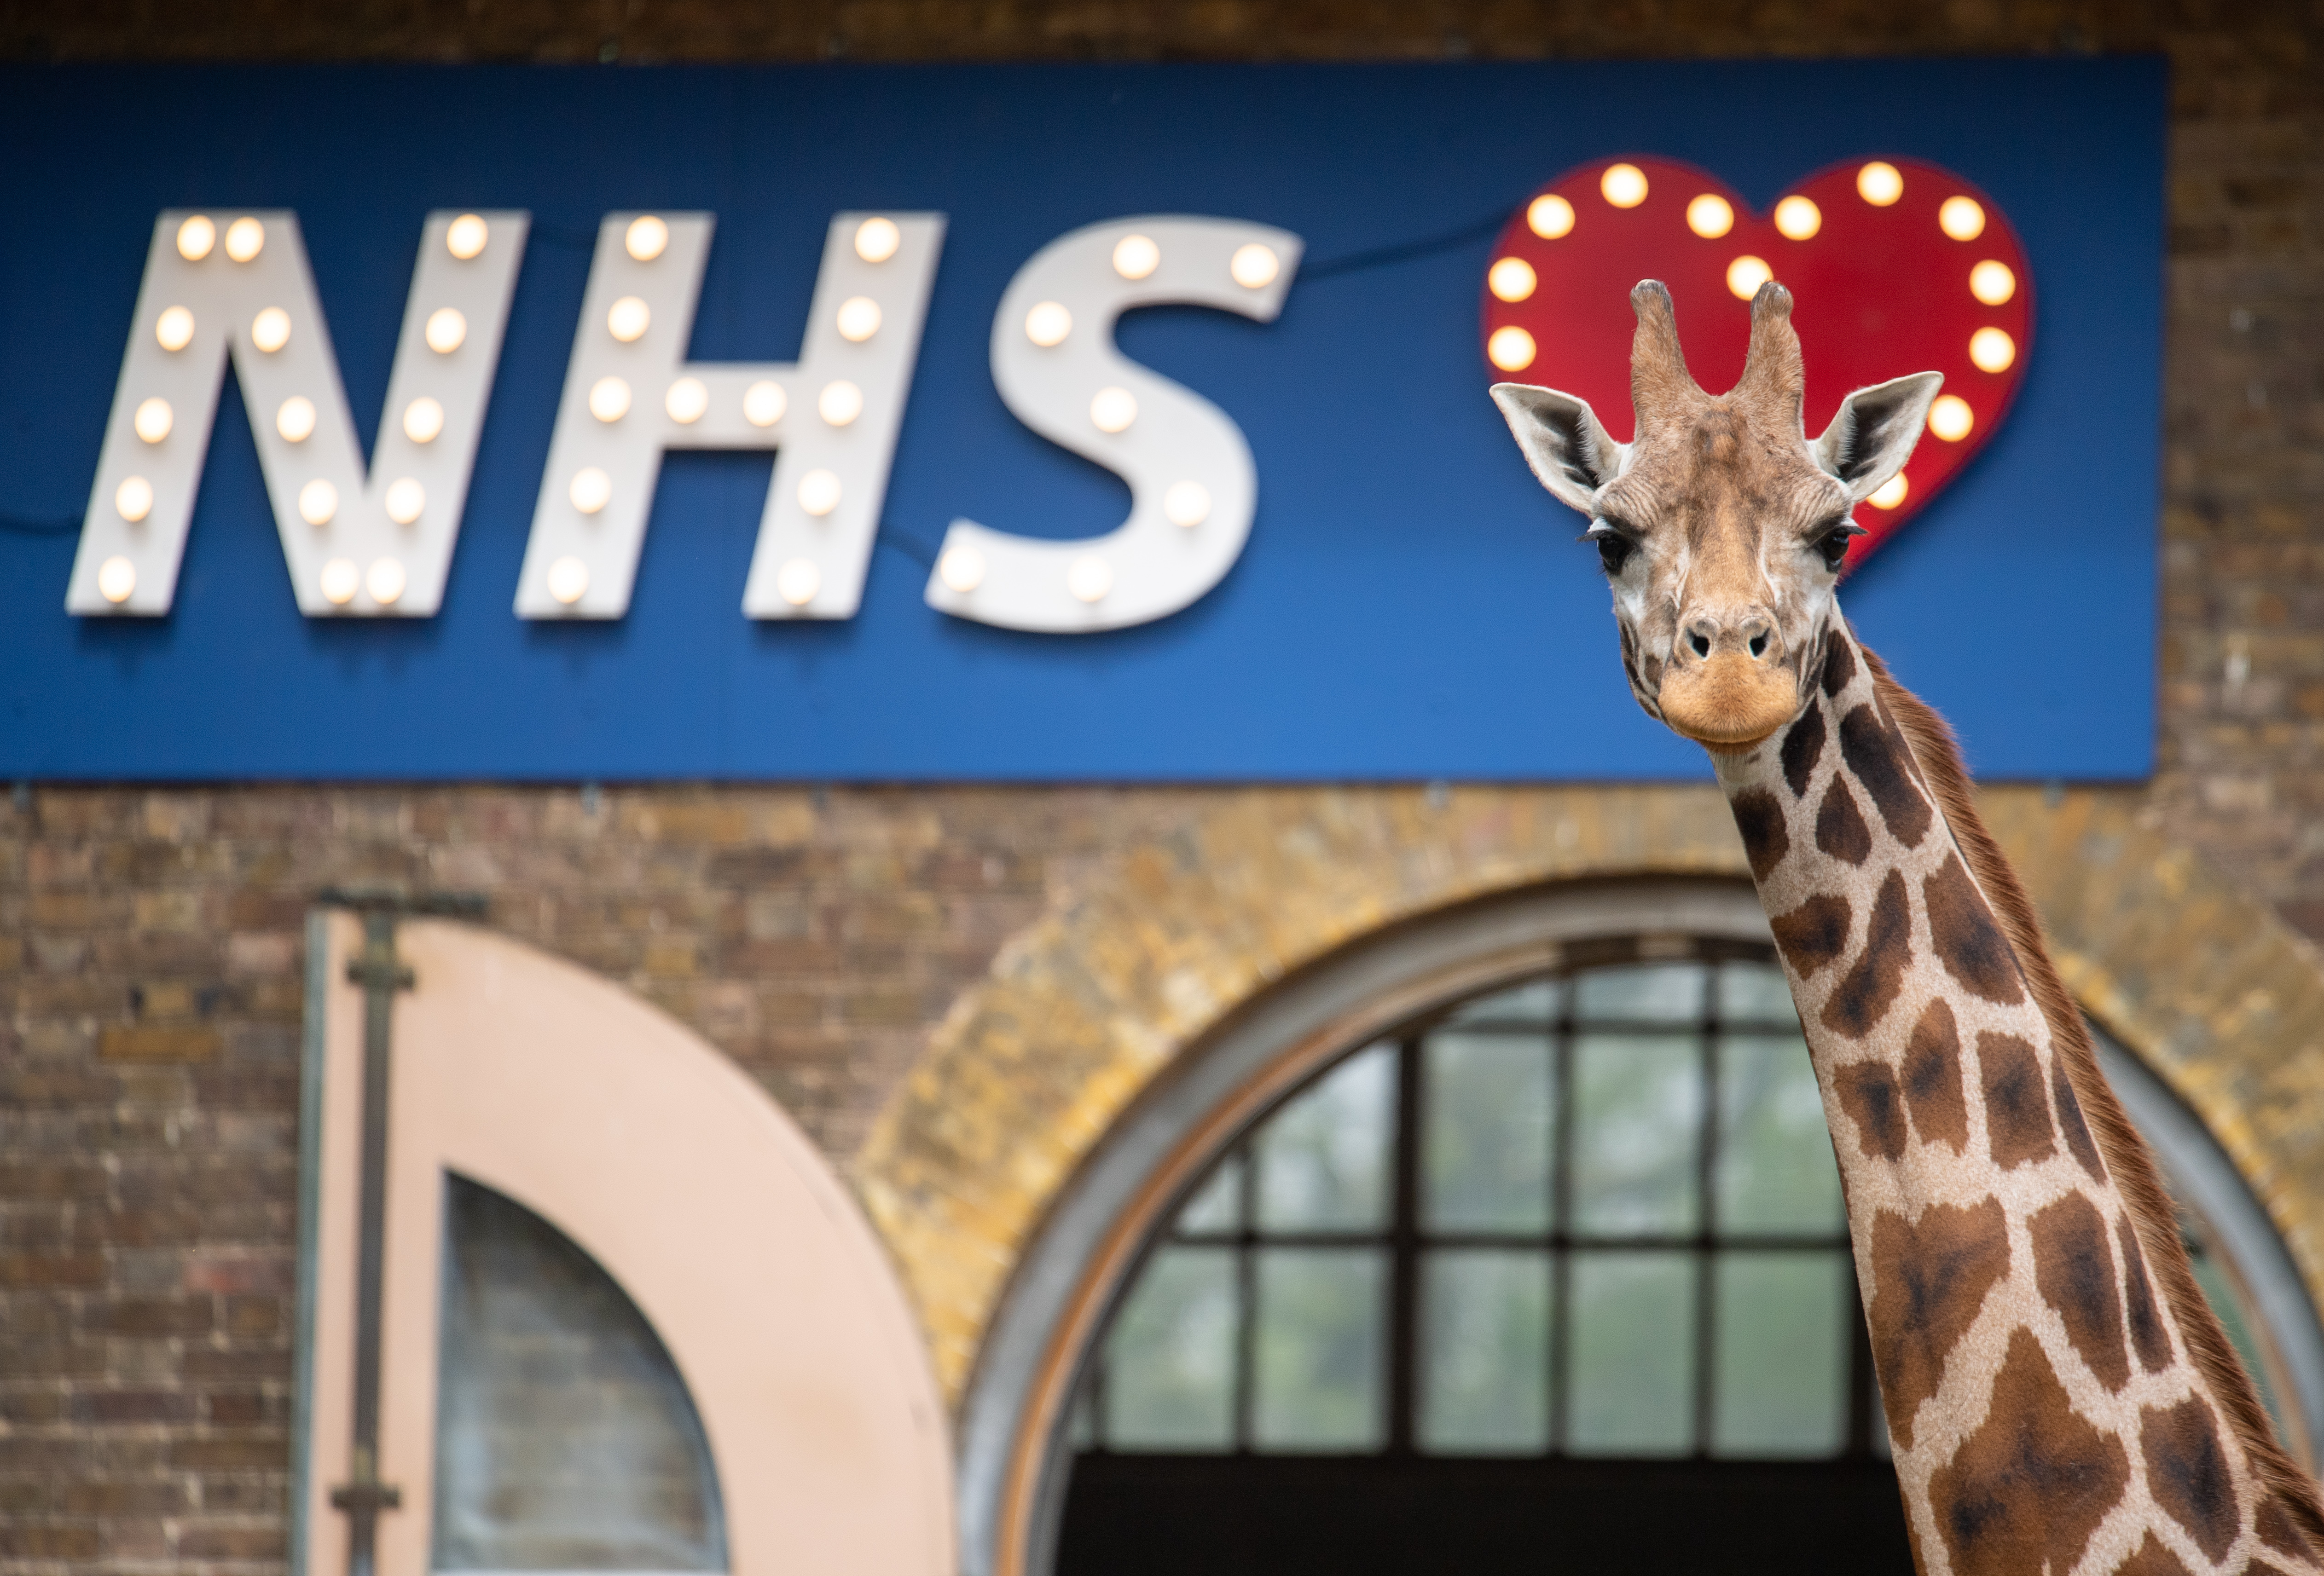 Maggie the giraffe stands with a sign showing support for the NHS at ZSL London Zoo, as the UK continues in lockdown to help curb the spread of the coronavirus.